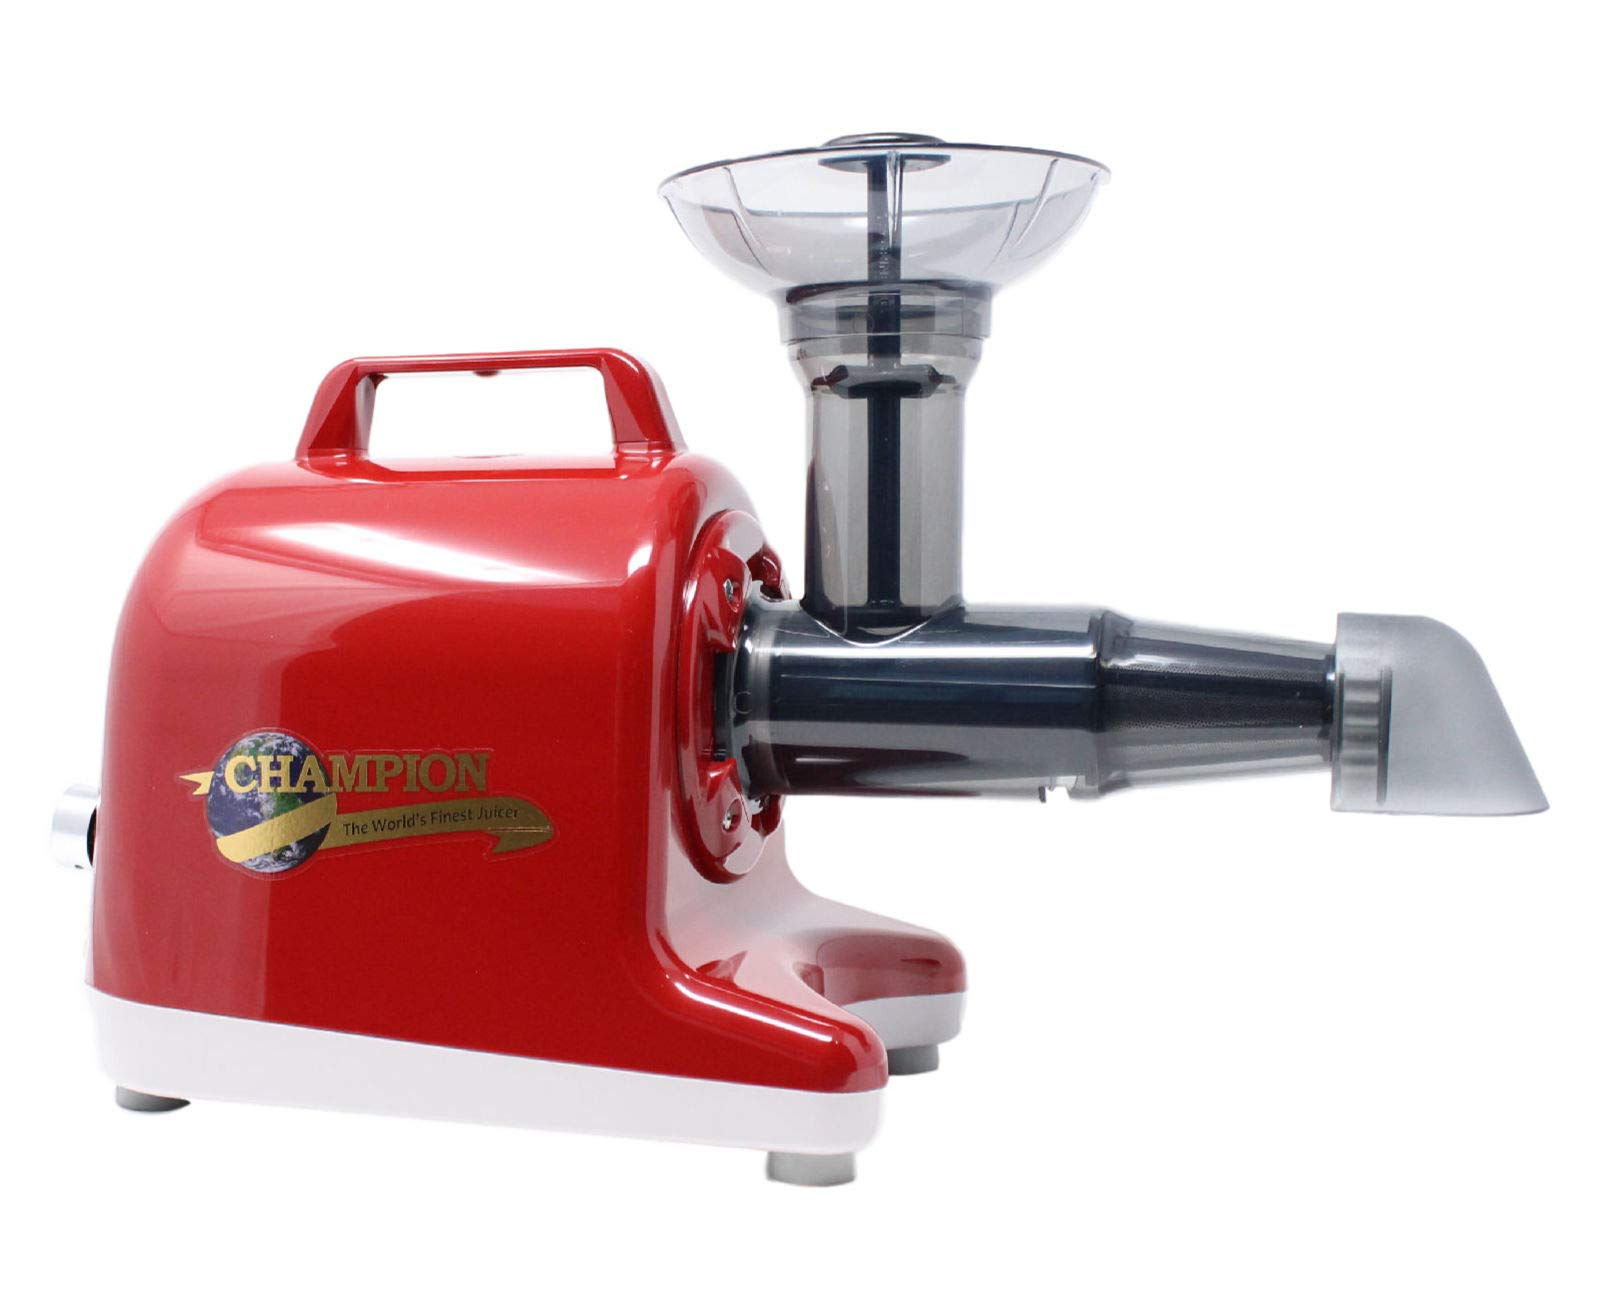 Champion Professional 5000 Dual Auger Variable Speed Masticating Juicer - Cherry Red by Champion Juicer